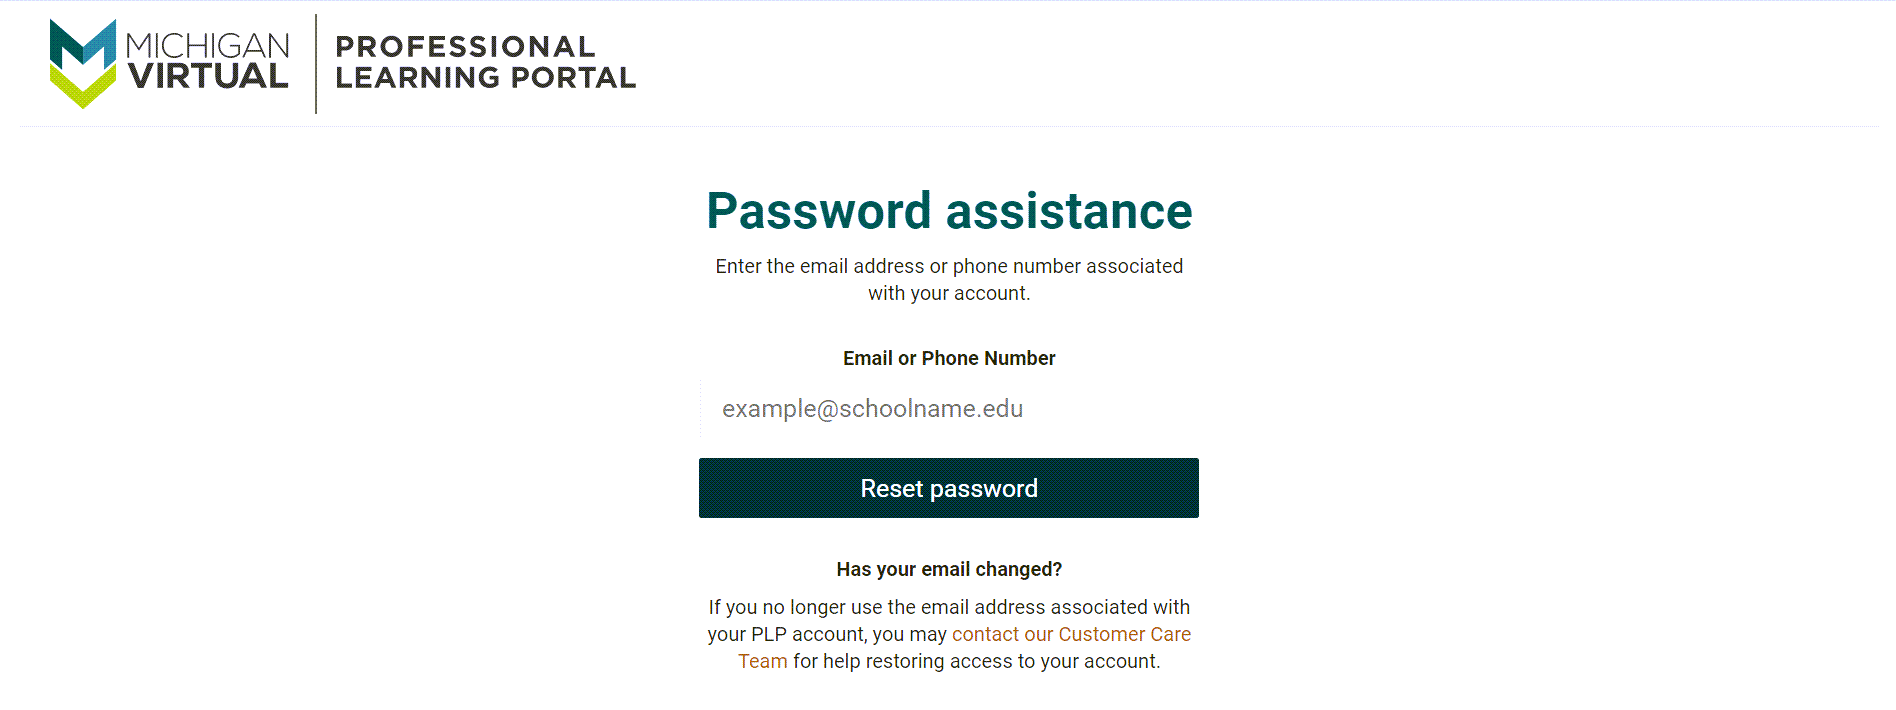 The password assistance page is displayed. The Email or phone number text box appears with the Reset Password button below.